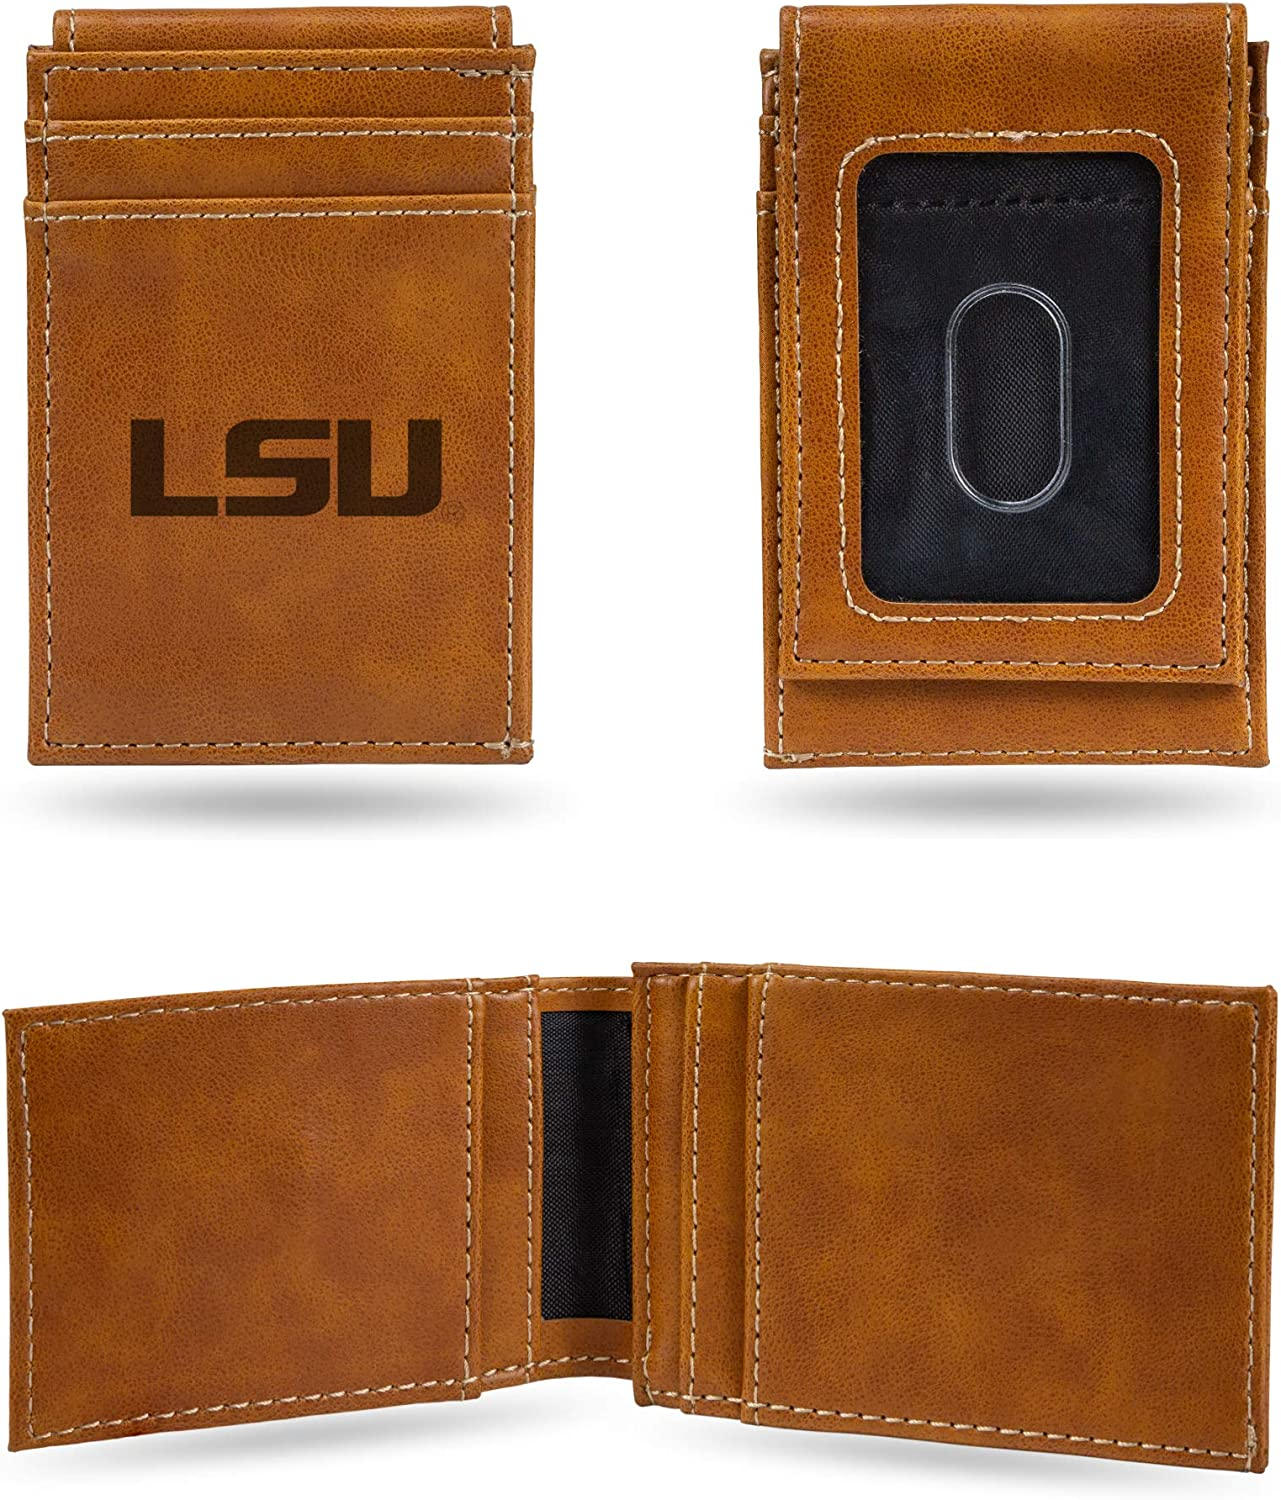 Rico Industries Laser Engraved Free shipping Max 54% OFF Pocket Front Wallet